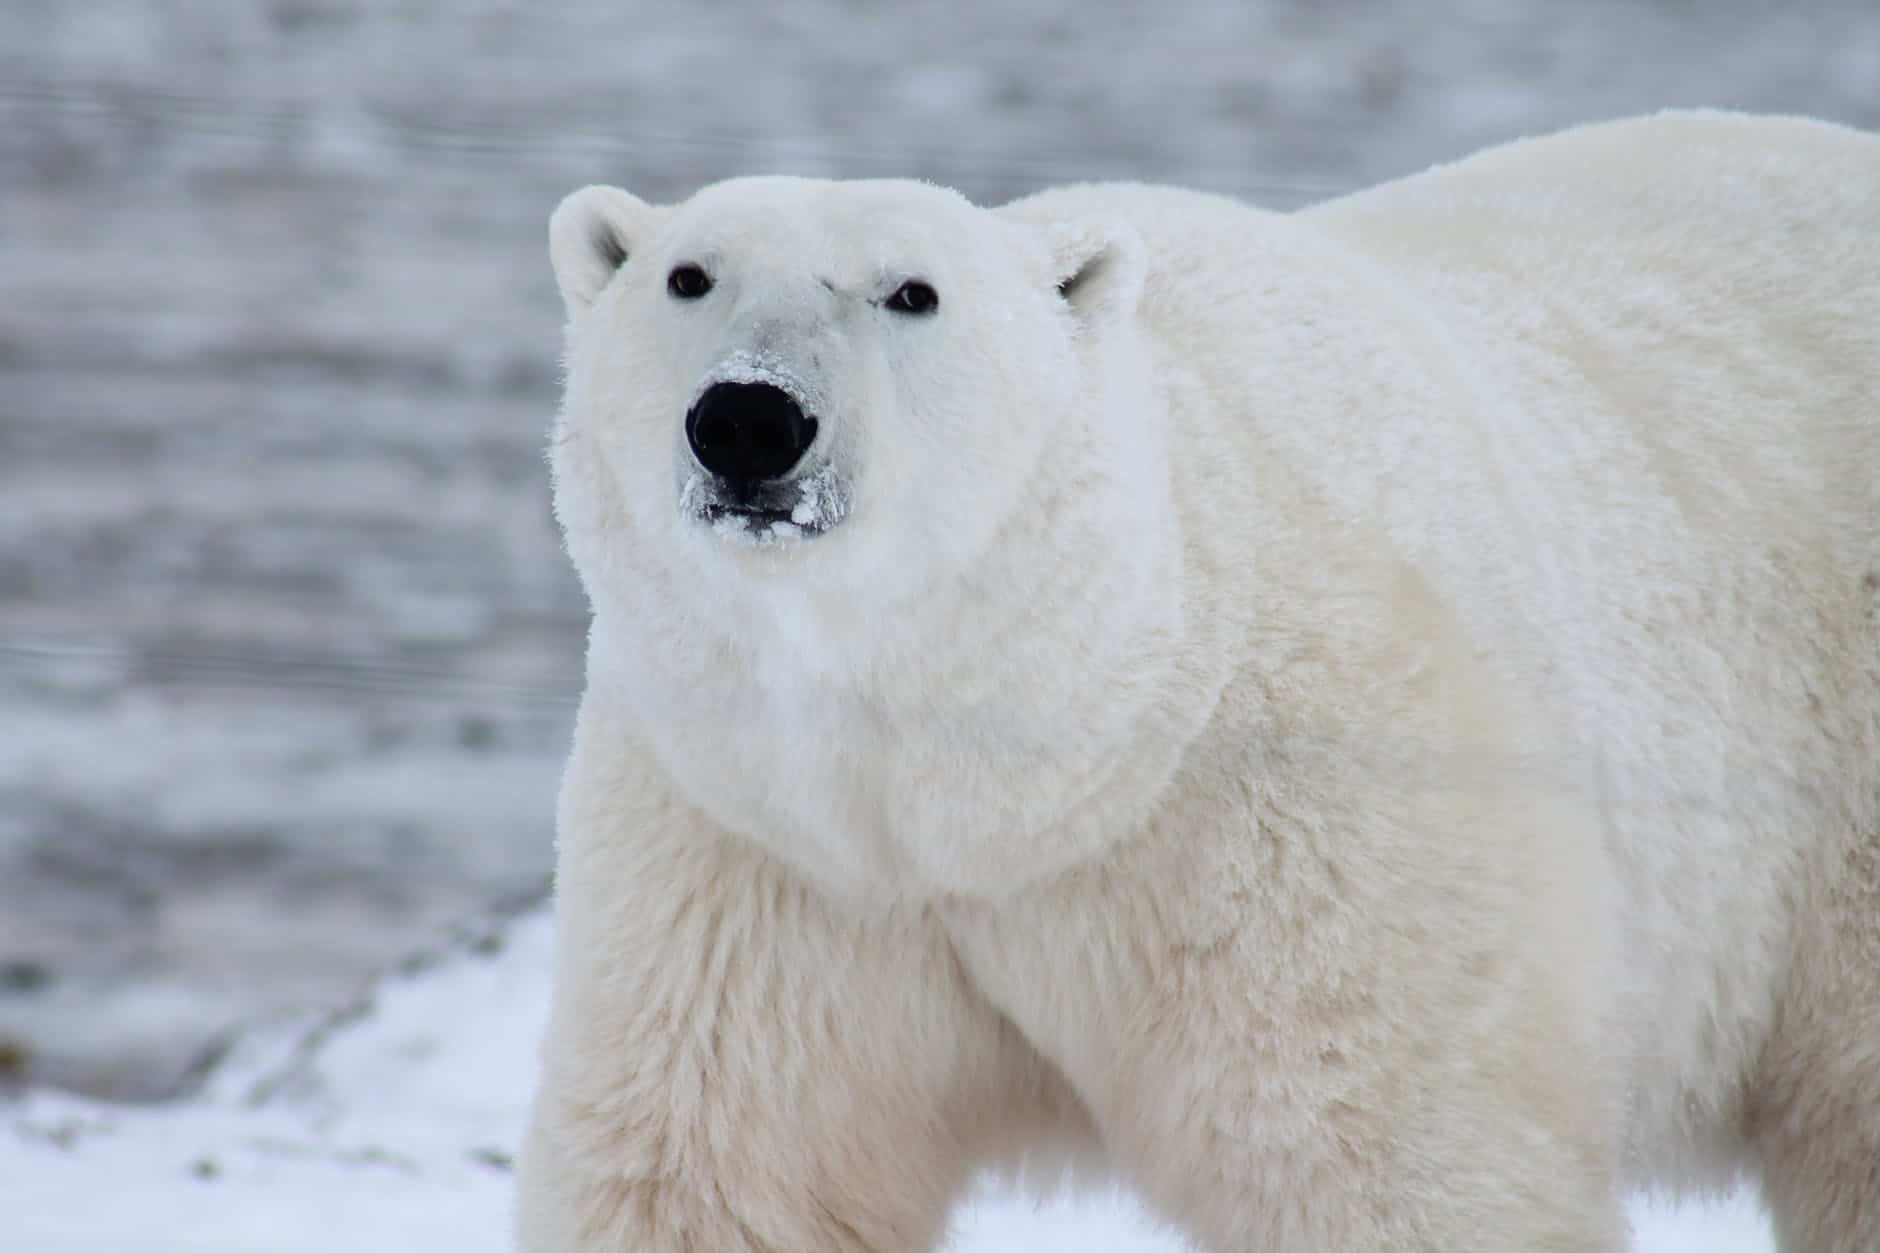 What are the interesting facts about Polar bear?